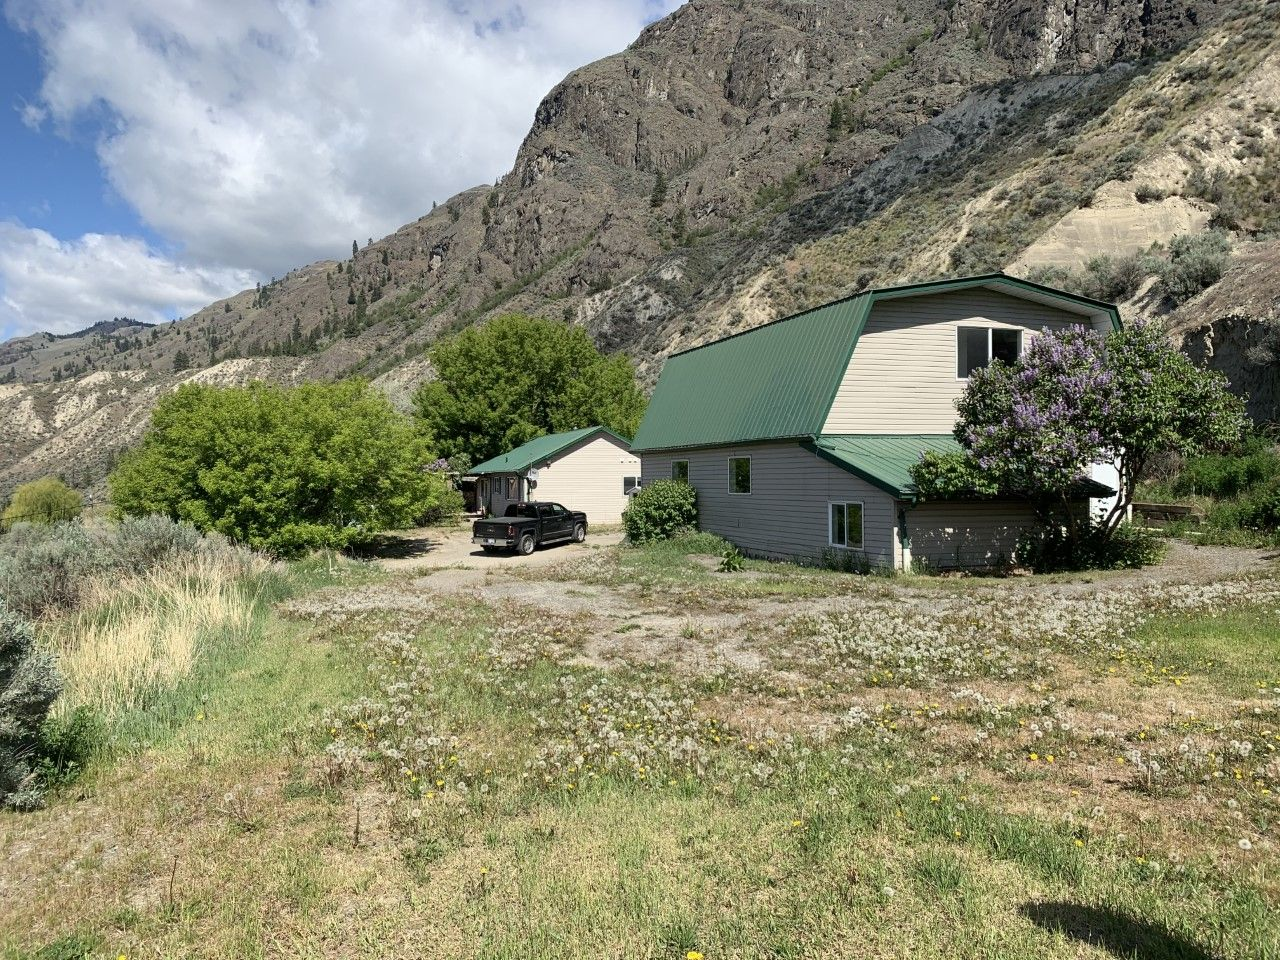 Main Photo: 3987/3991 Shuswap Road E. in Kamloops: South Thompson Valley House for sale : MLS®# 162104